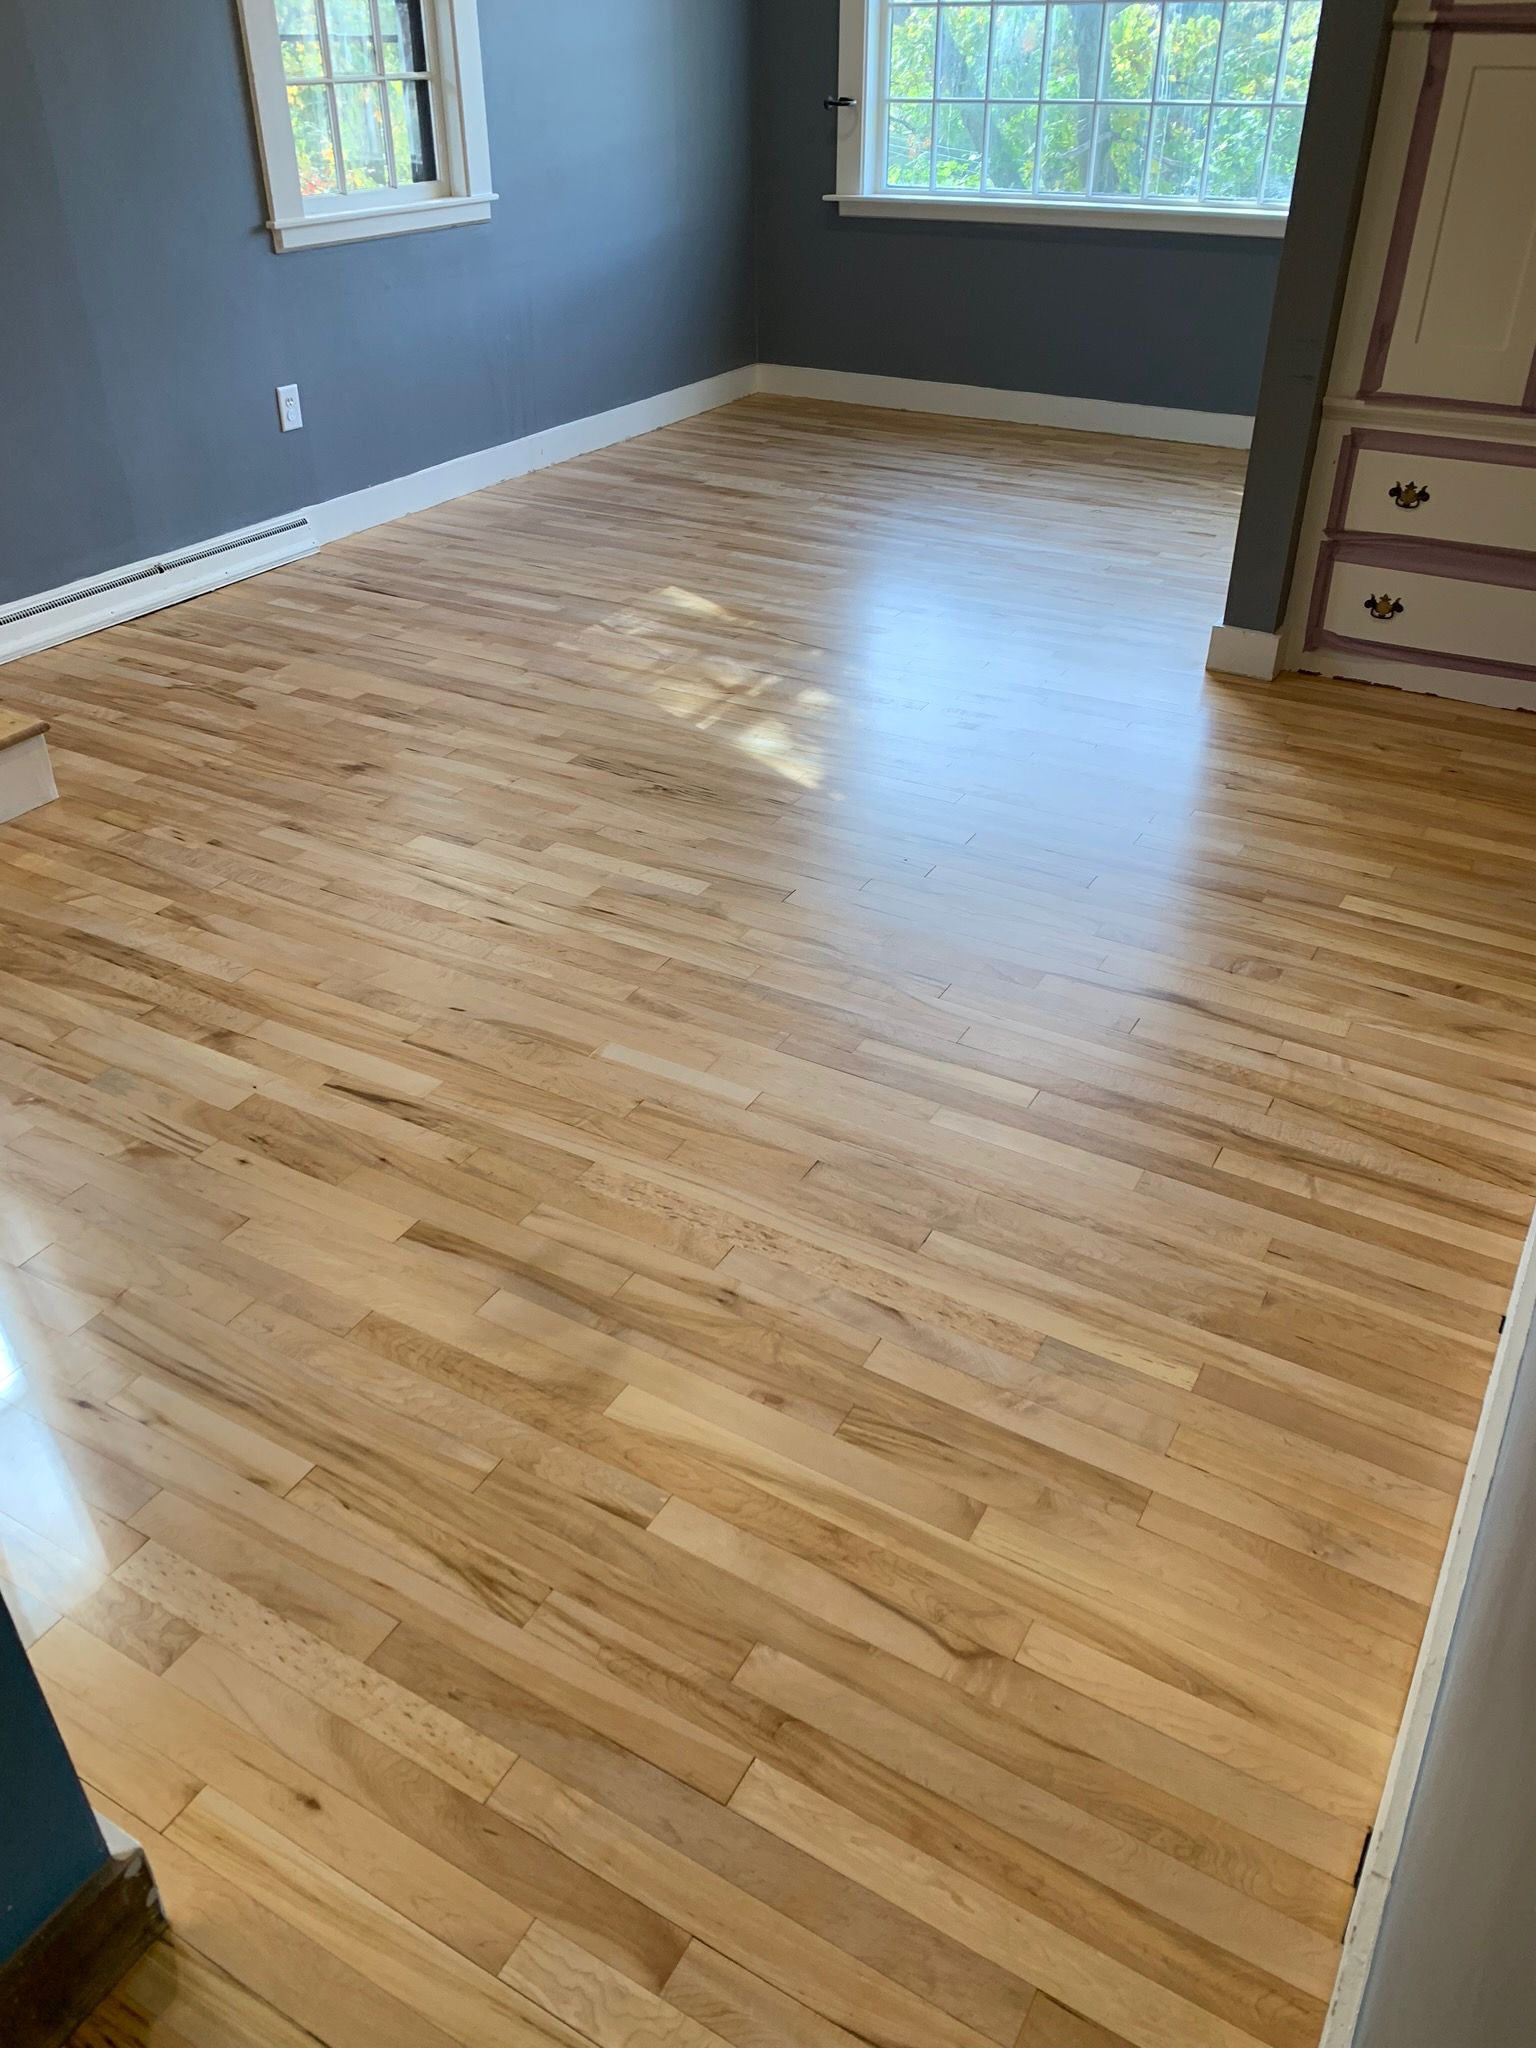 Birch Hardwood Flooring Hardwood Birch Hardwood Floors Hardwood Floors